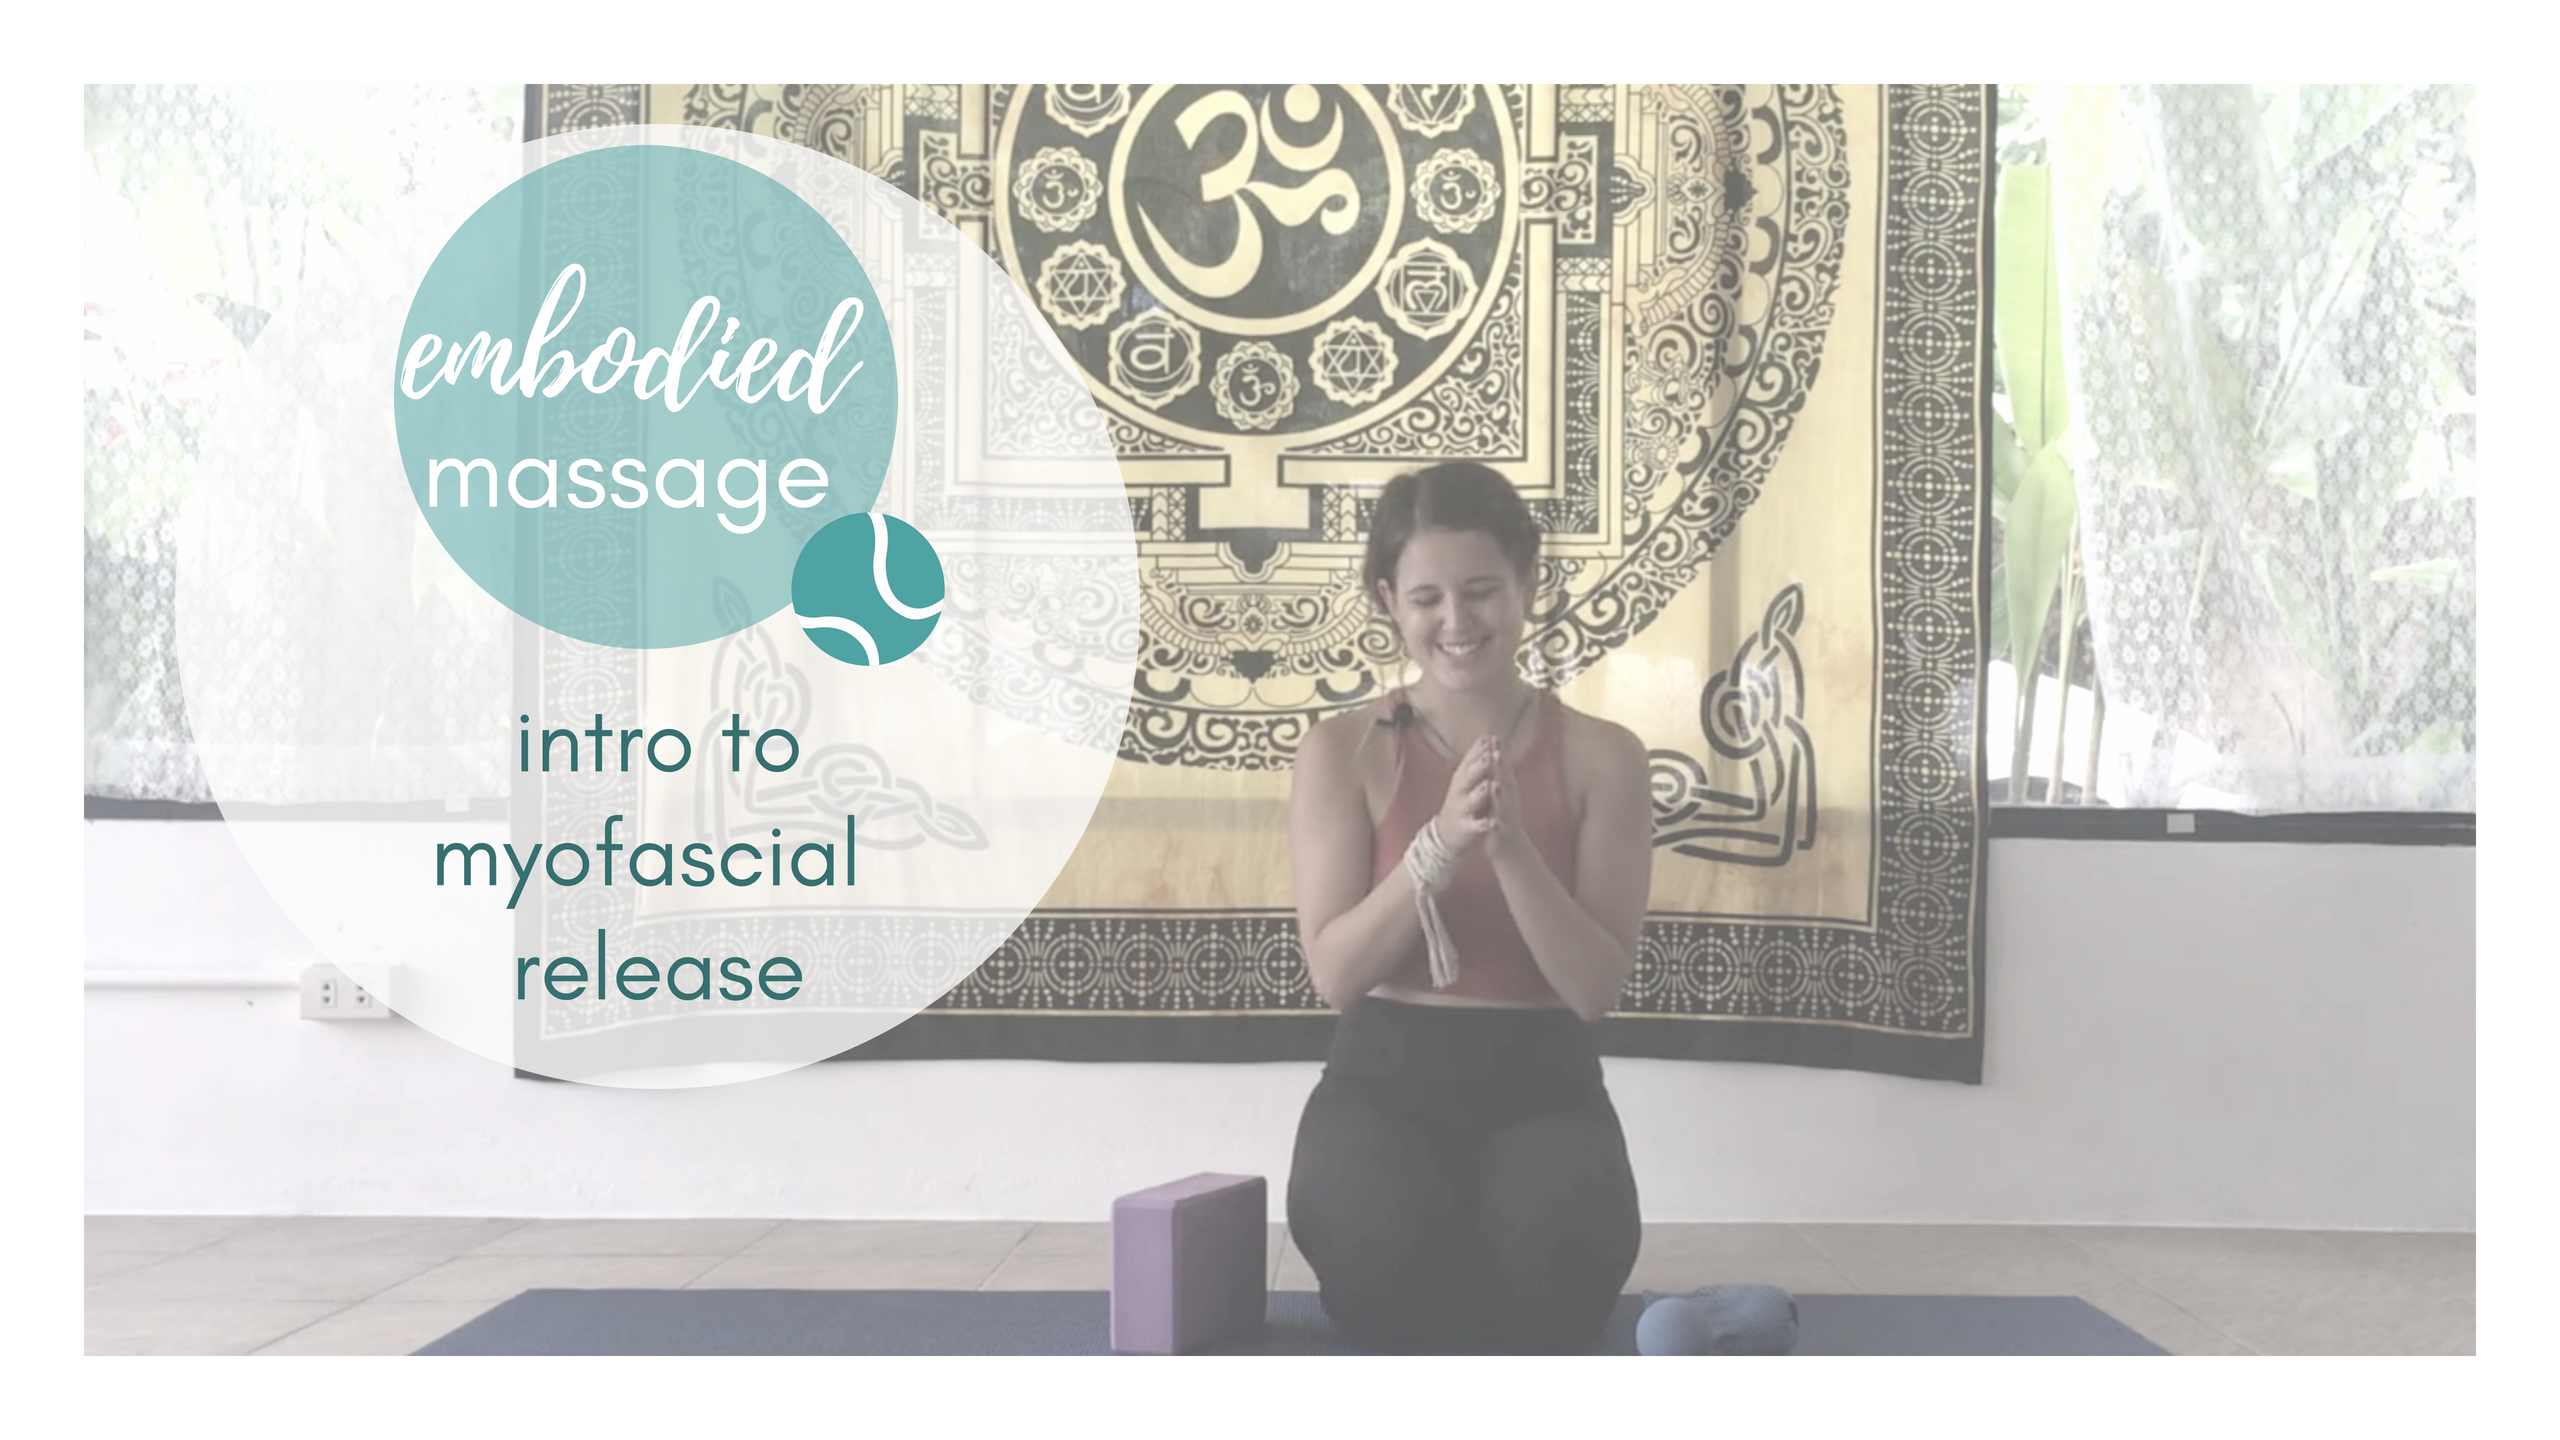 myofascial home practices